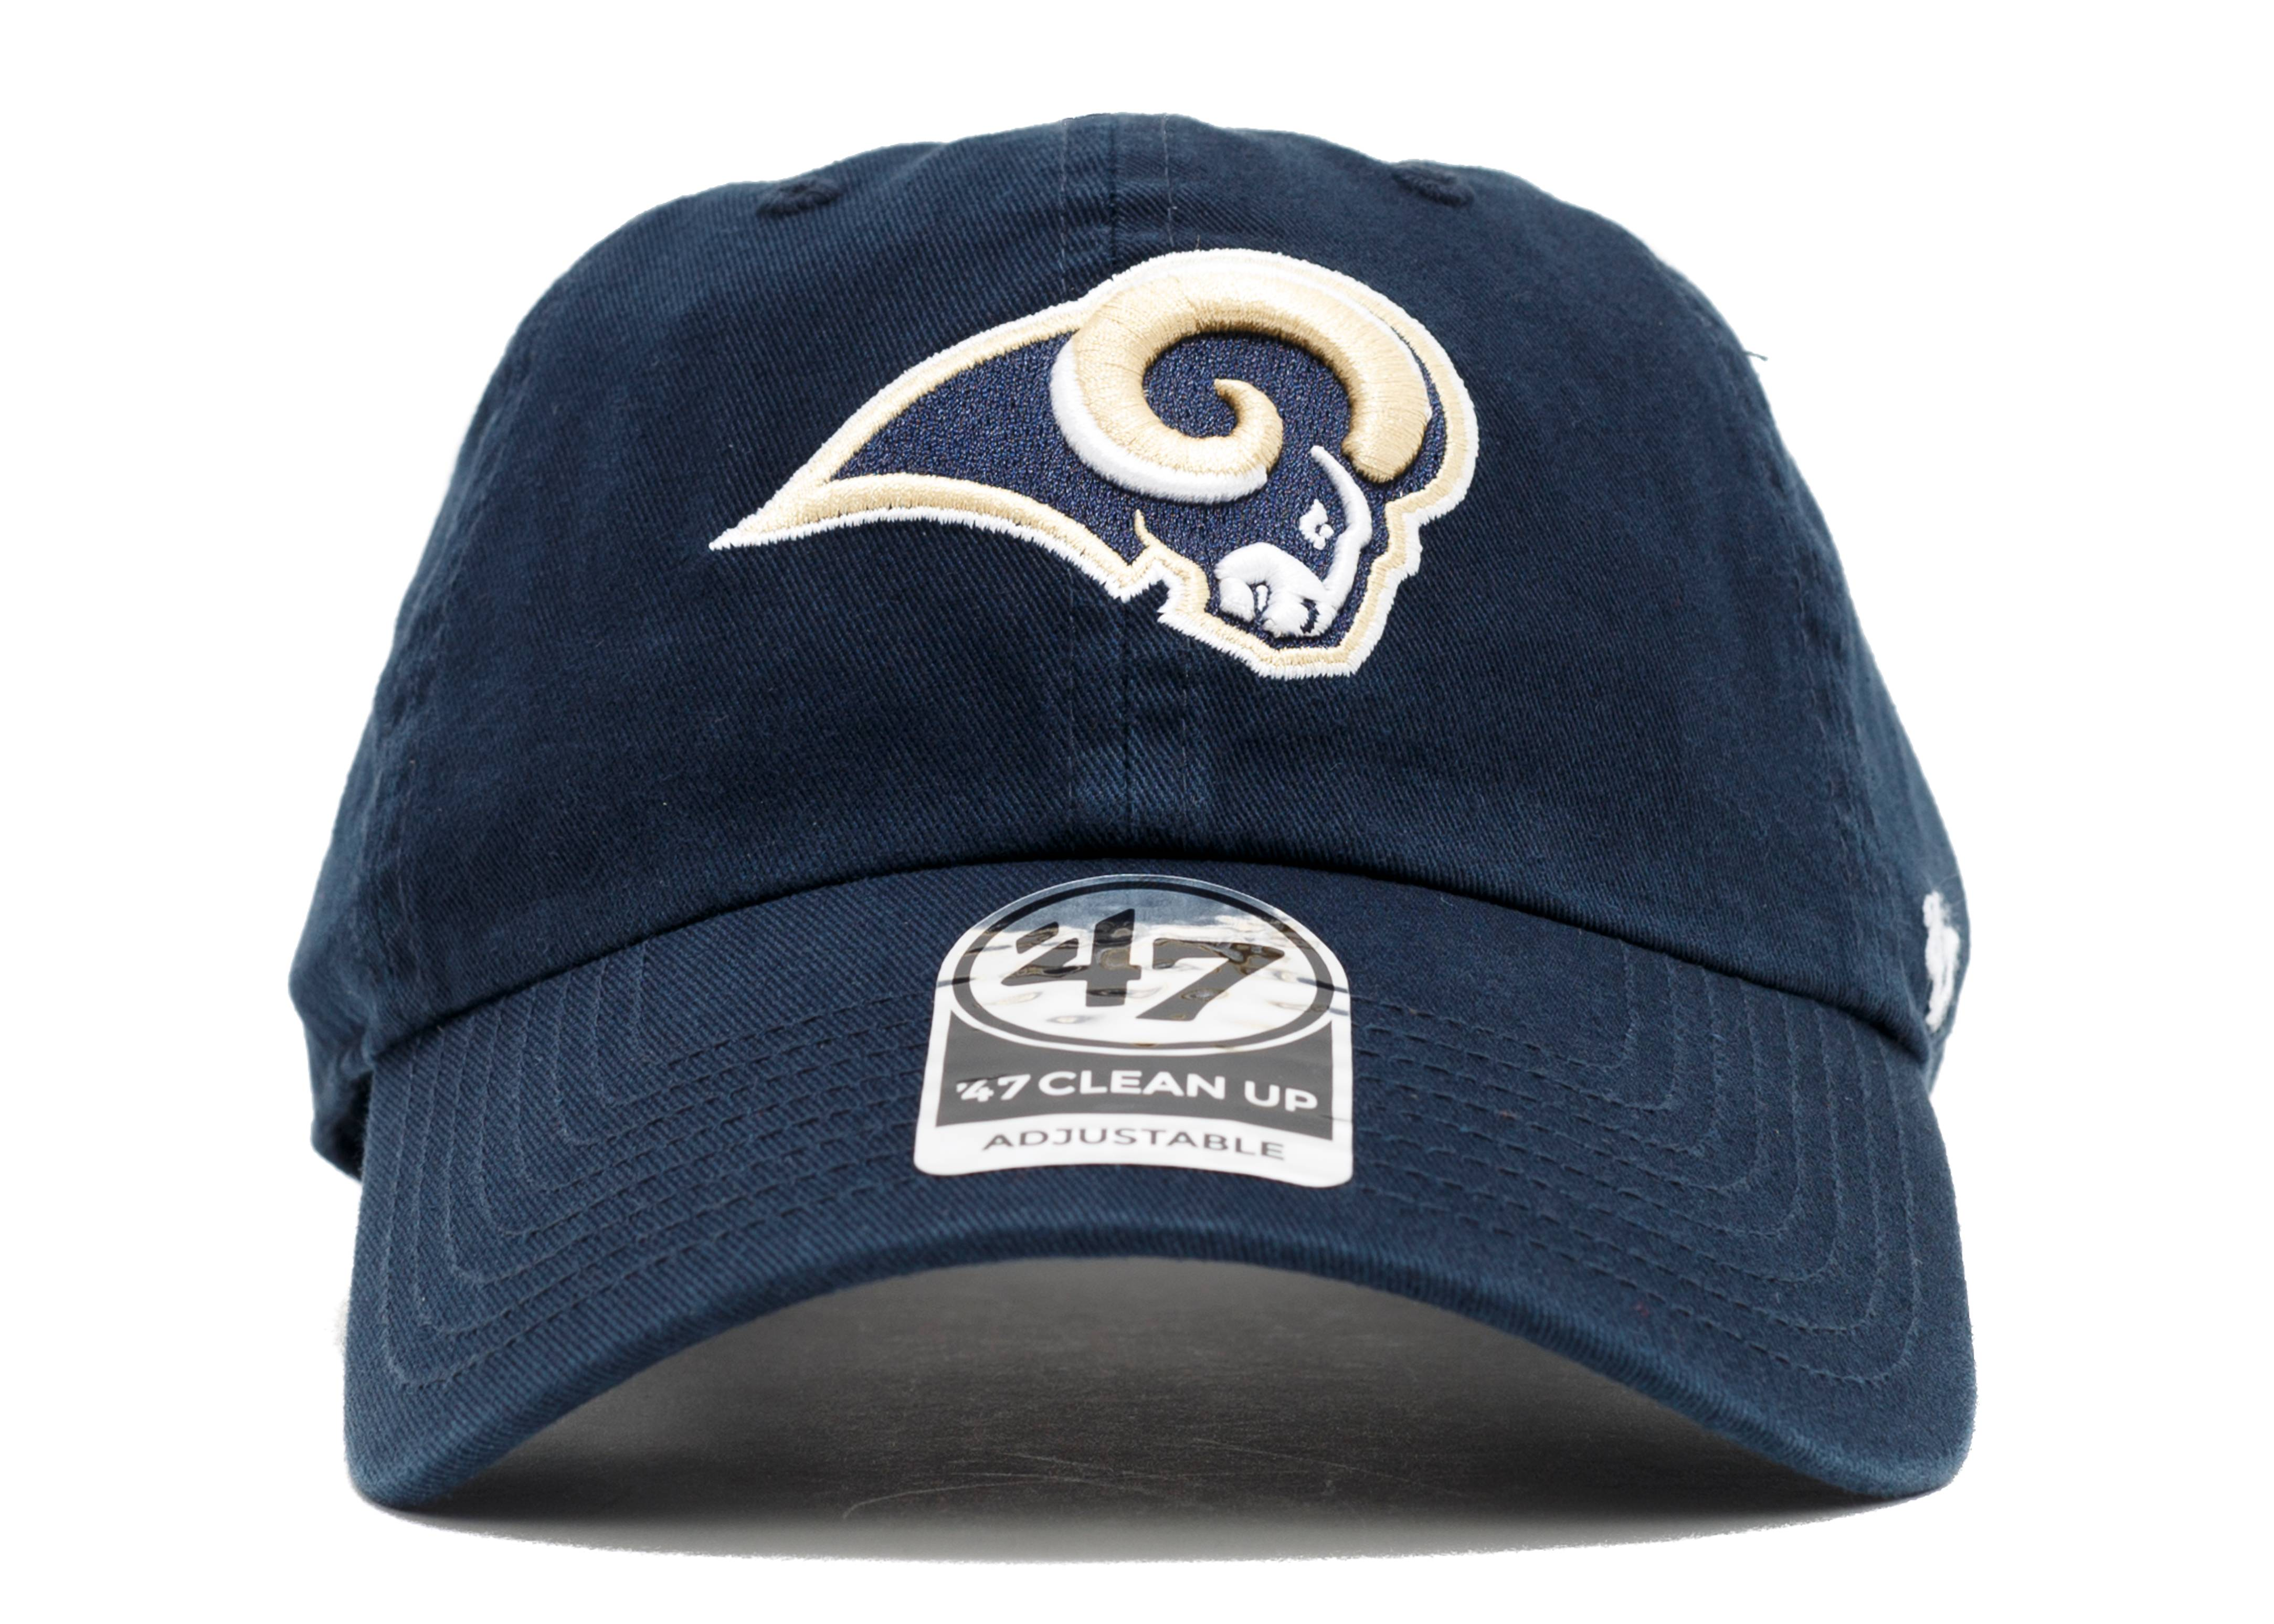 los angeles rams strap-back